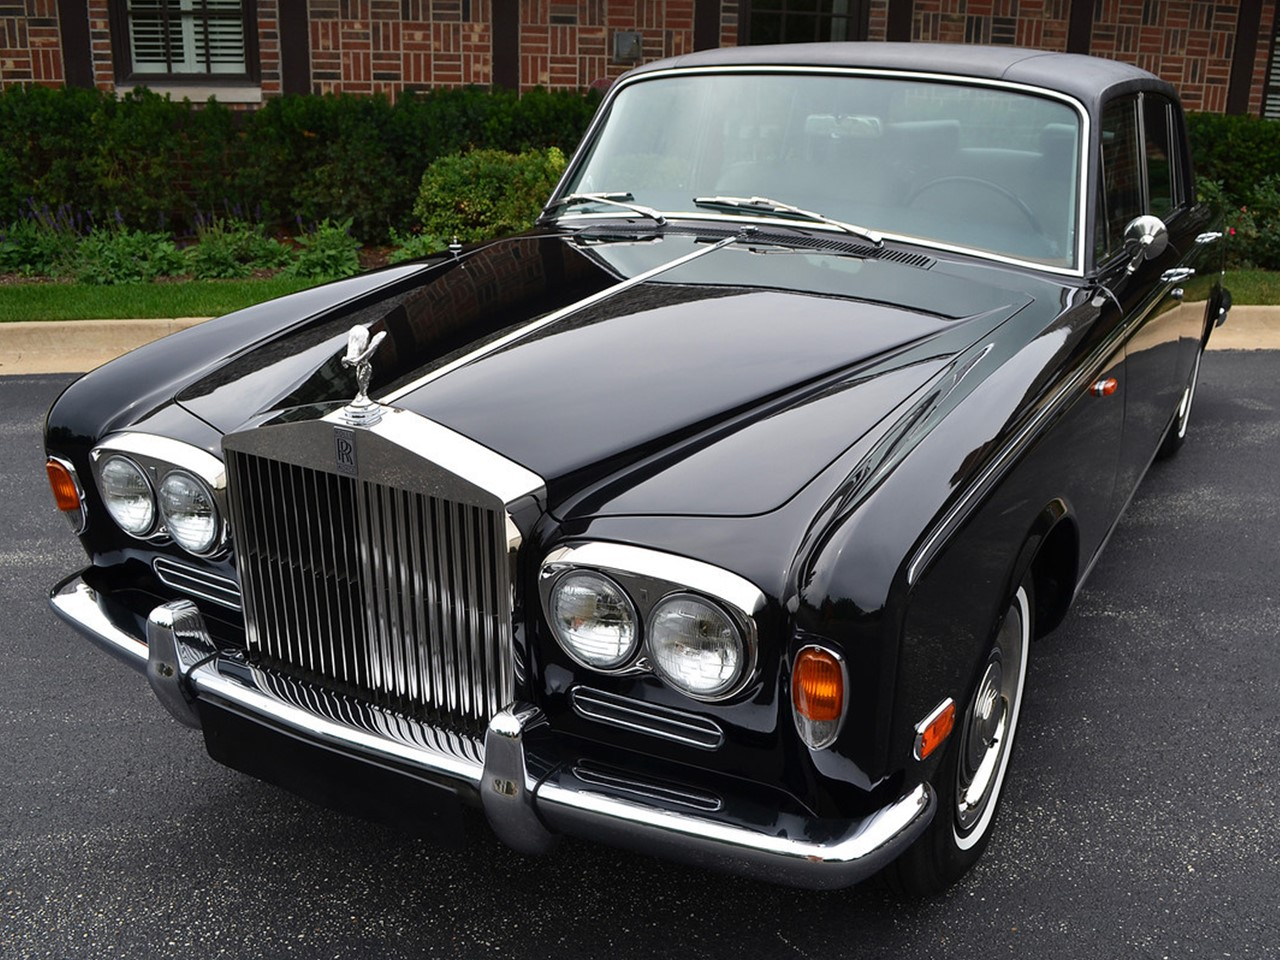 1971 rolls royce silver shadow lwb formal limousine notoriousluxury. Black Bedroom Furniture Sets. Home Design Ideas